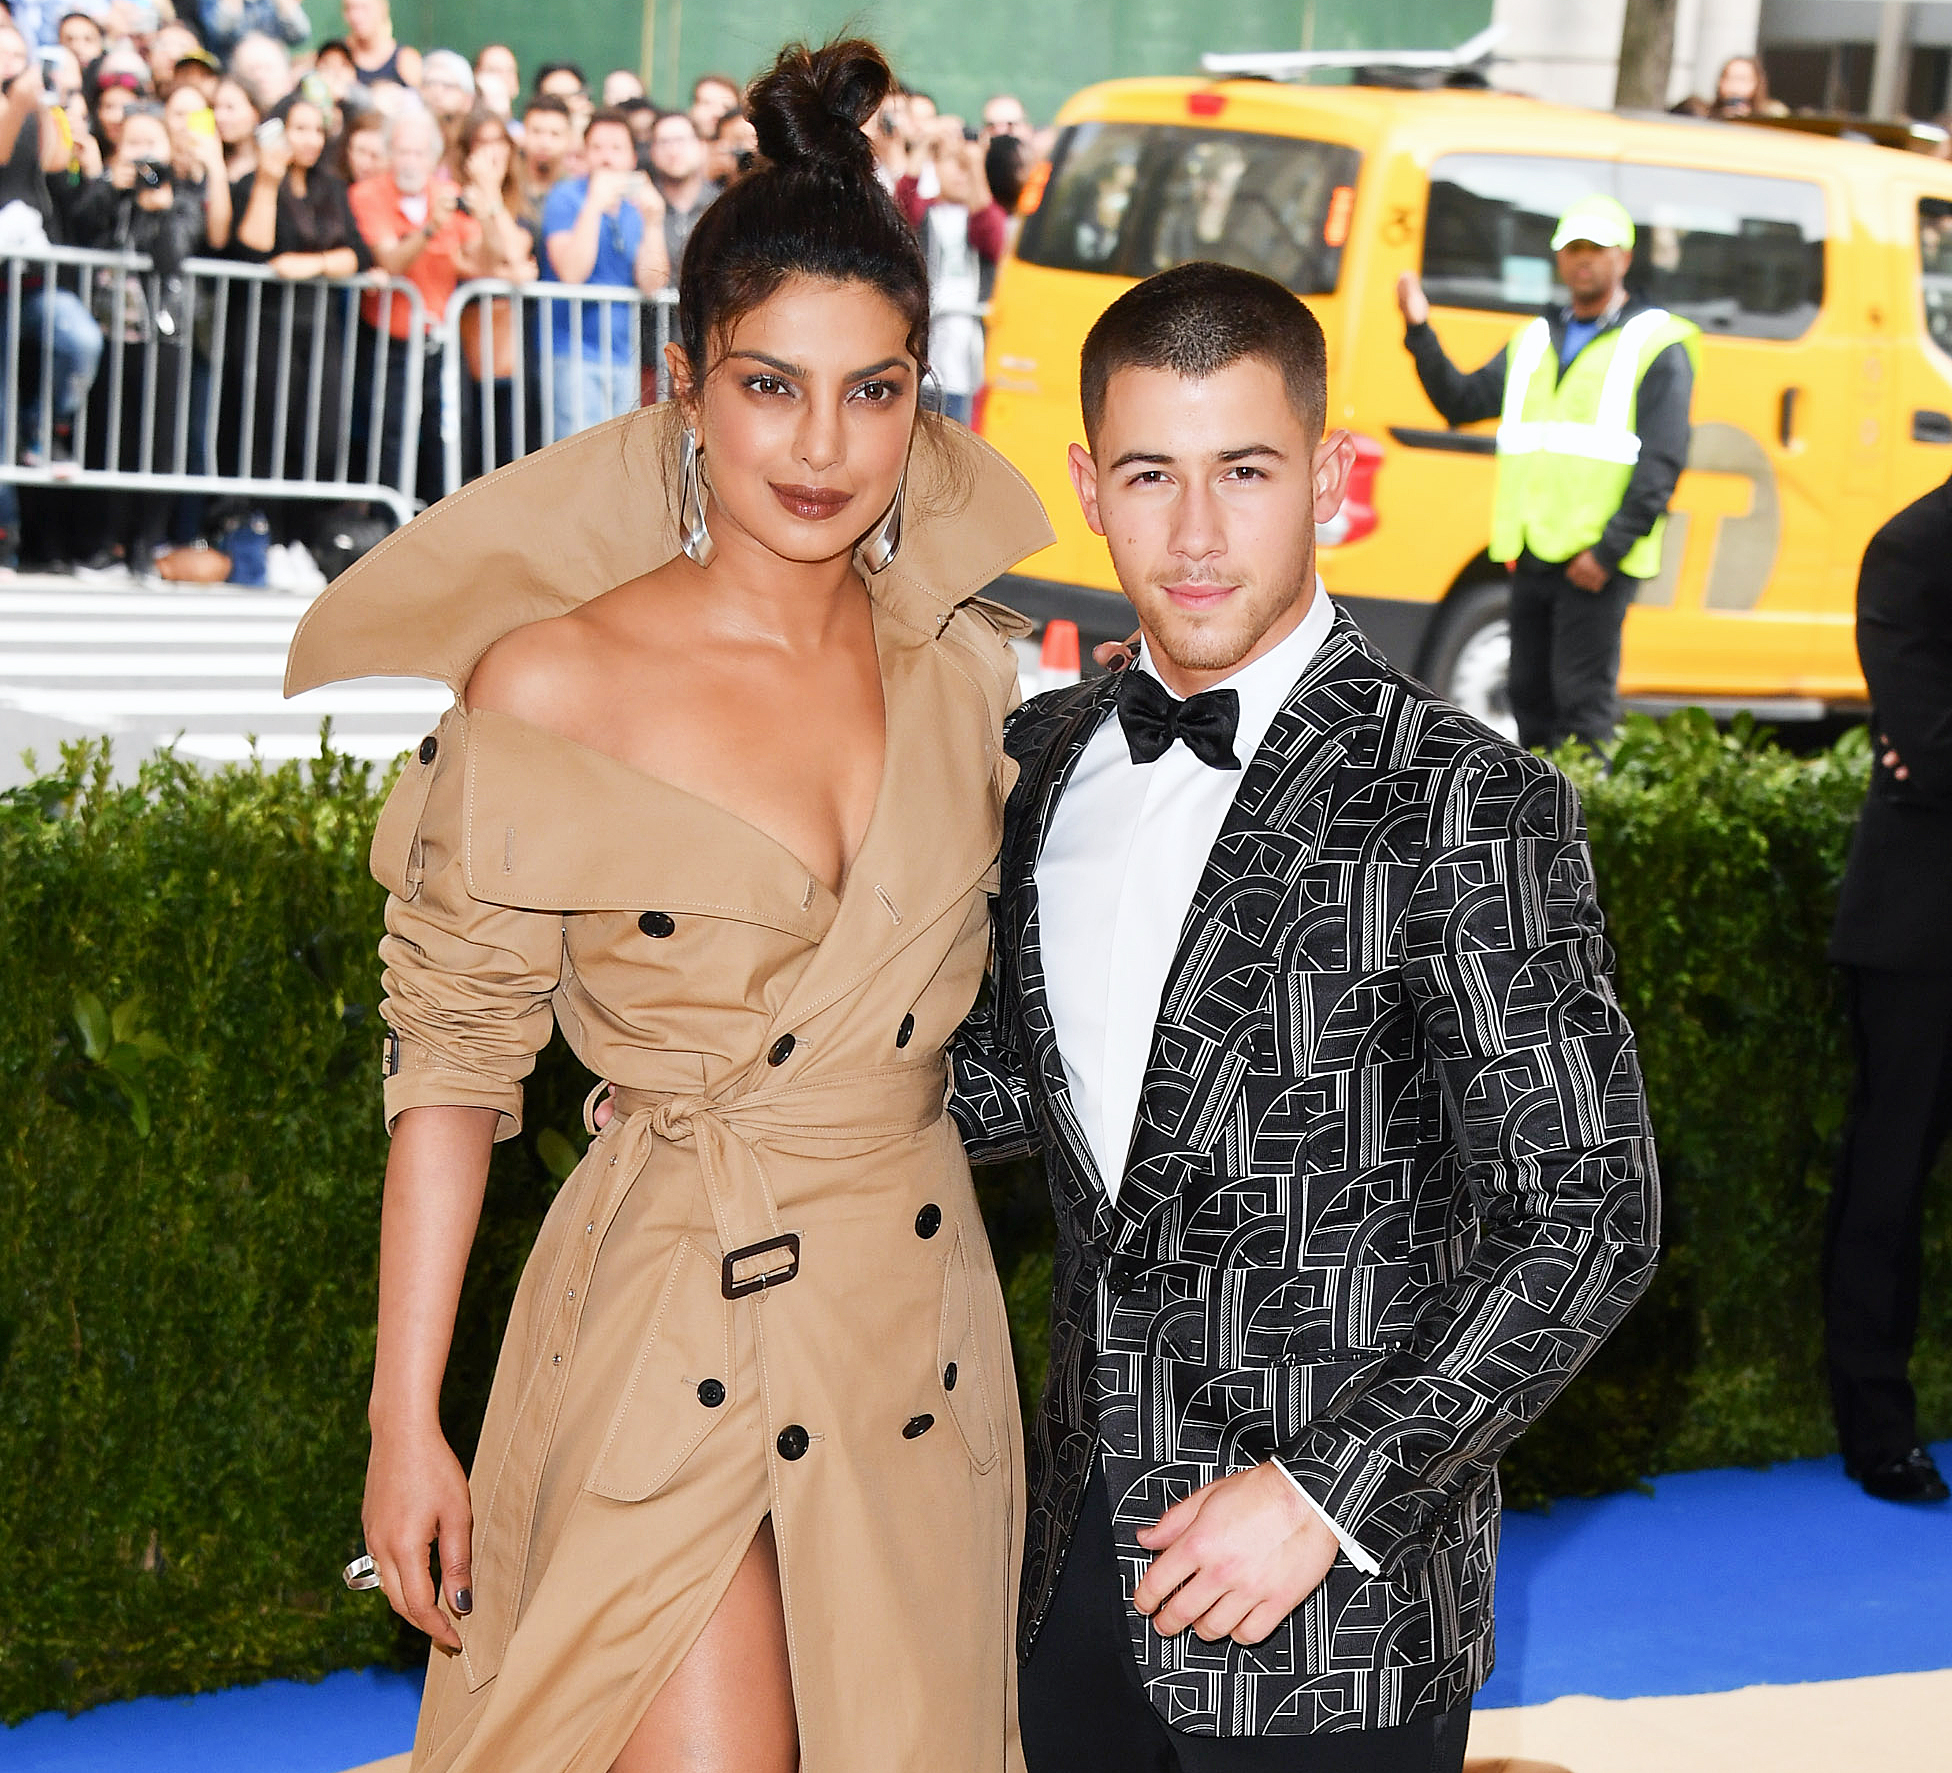 New Couple Alert? Nick Jonas & Priyanka Chopra Spent Memorial Day Weekend Together